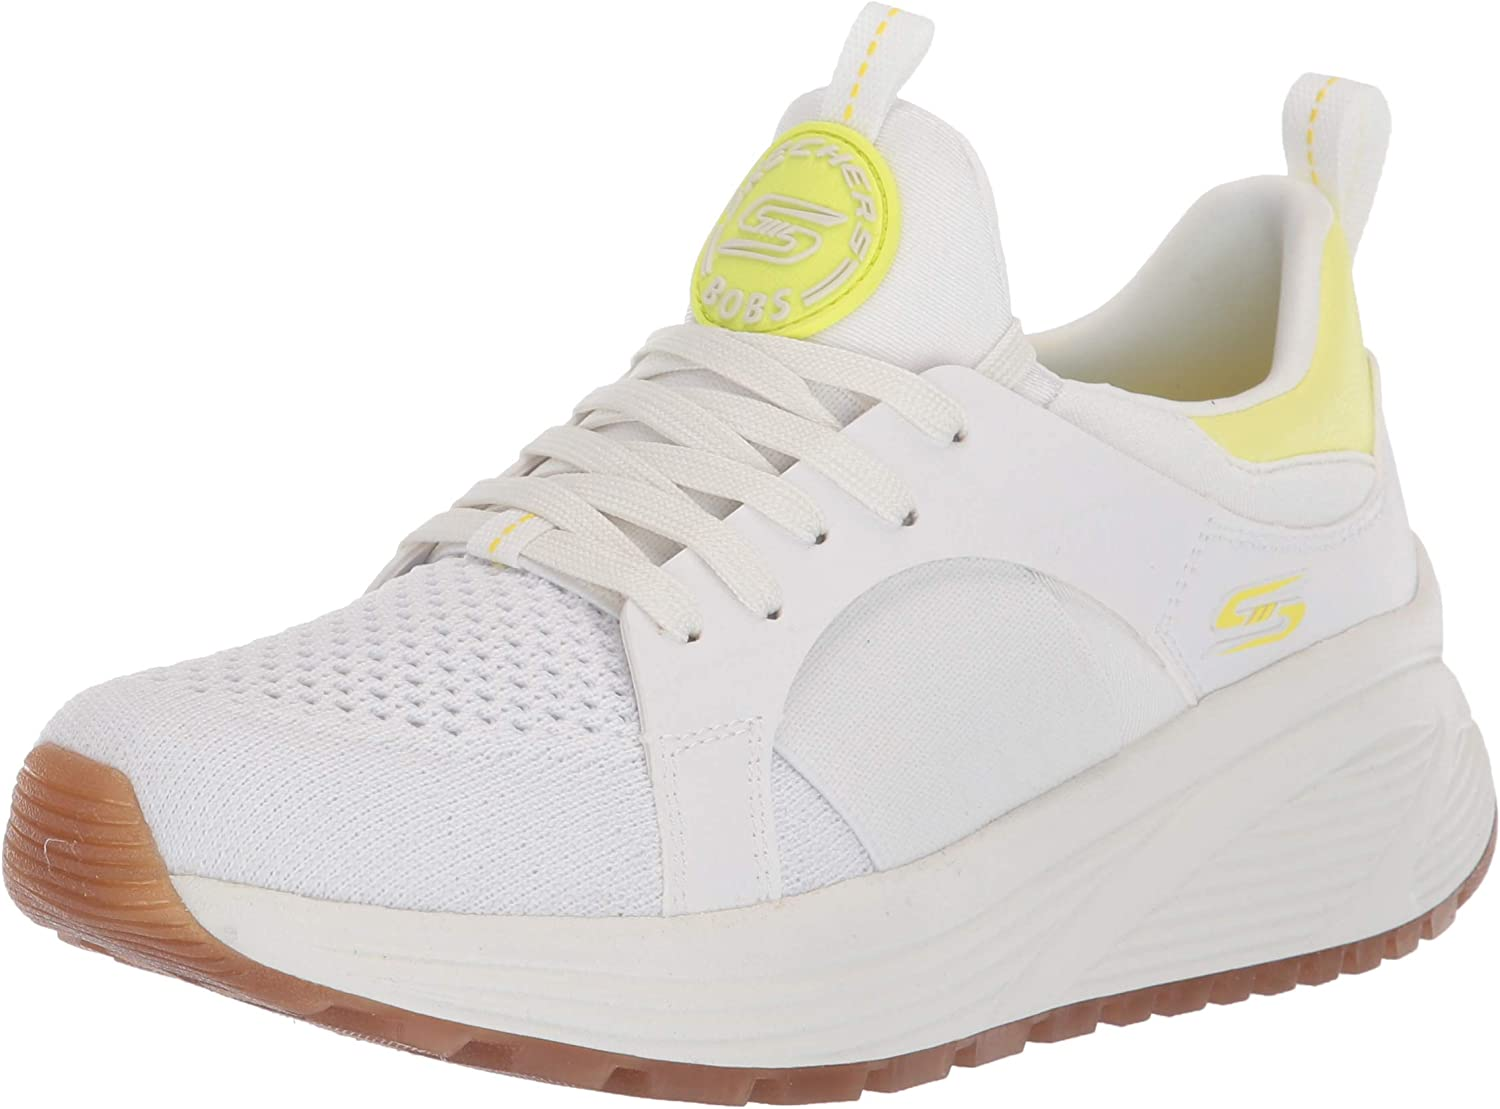 Skechers Women's Bobs Sparrow 2.0-Metro Sneaker New mail Max 44% OFF order Daisy